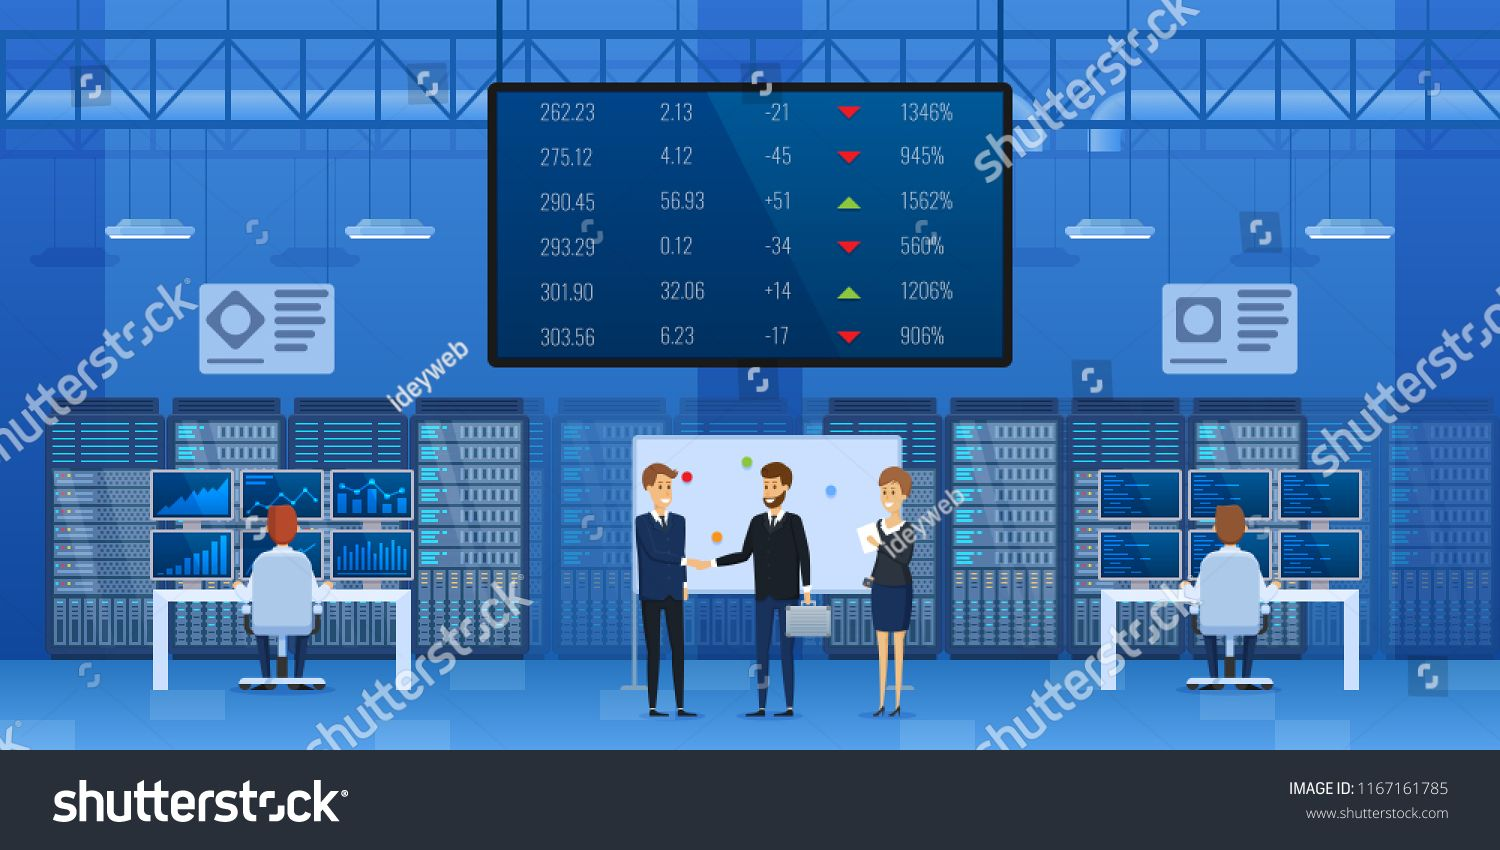 People At Office Of Financial Monitoring Of Stock Market Interior Control Center Monitoring Financial Market Inform Stock Market Financial Financial Markets